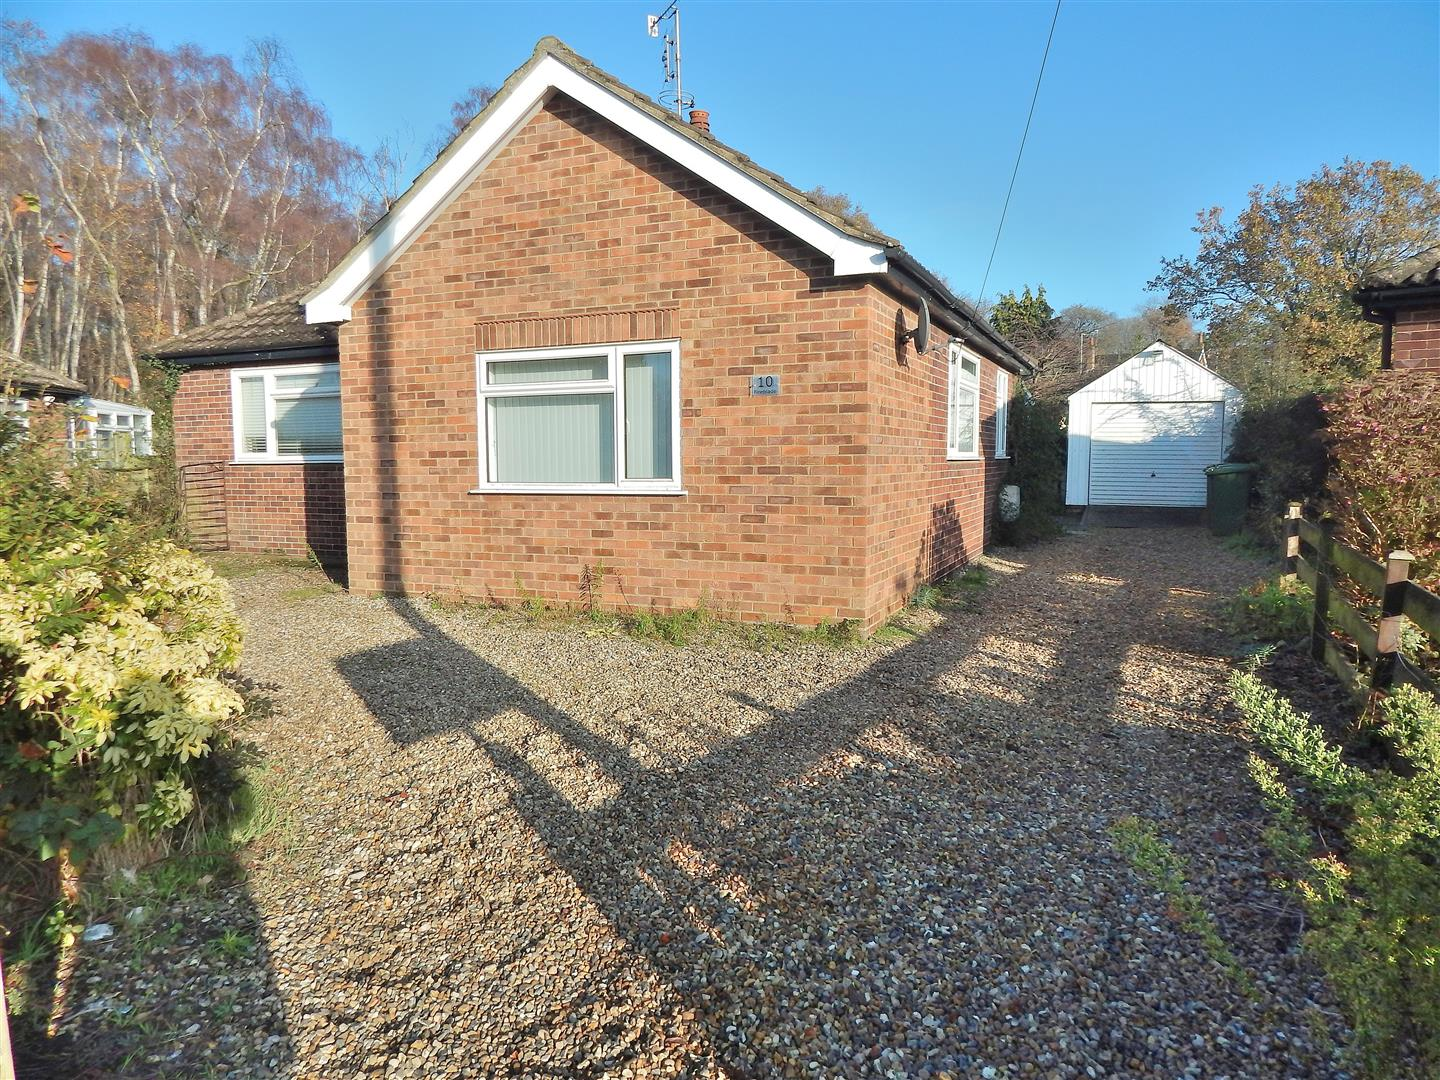 2 bed detached bungalow for sale in King's Lynn, PE31 6QD, PE31